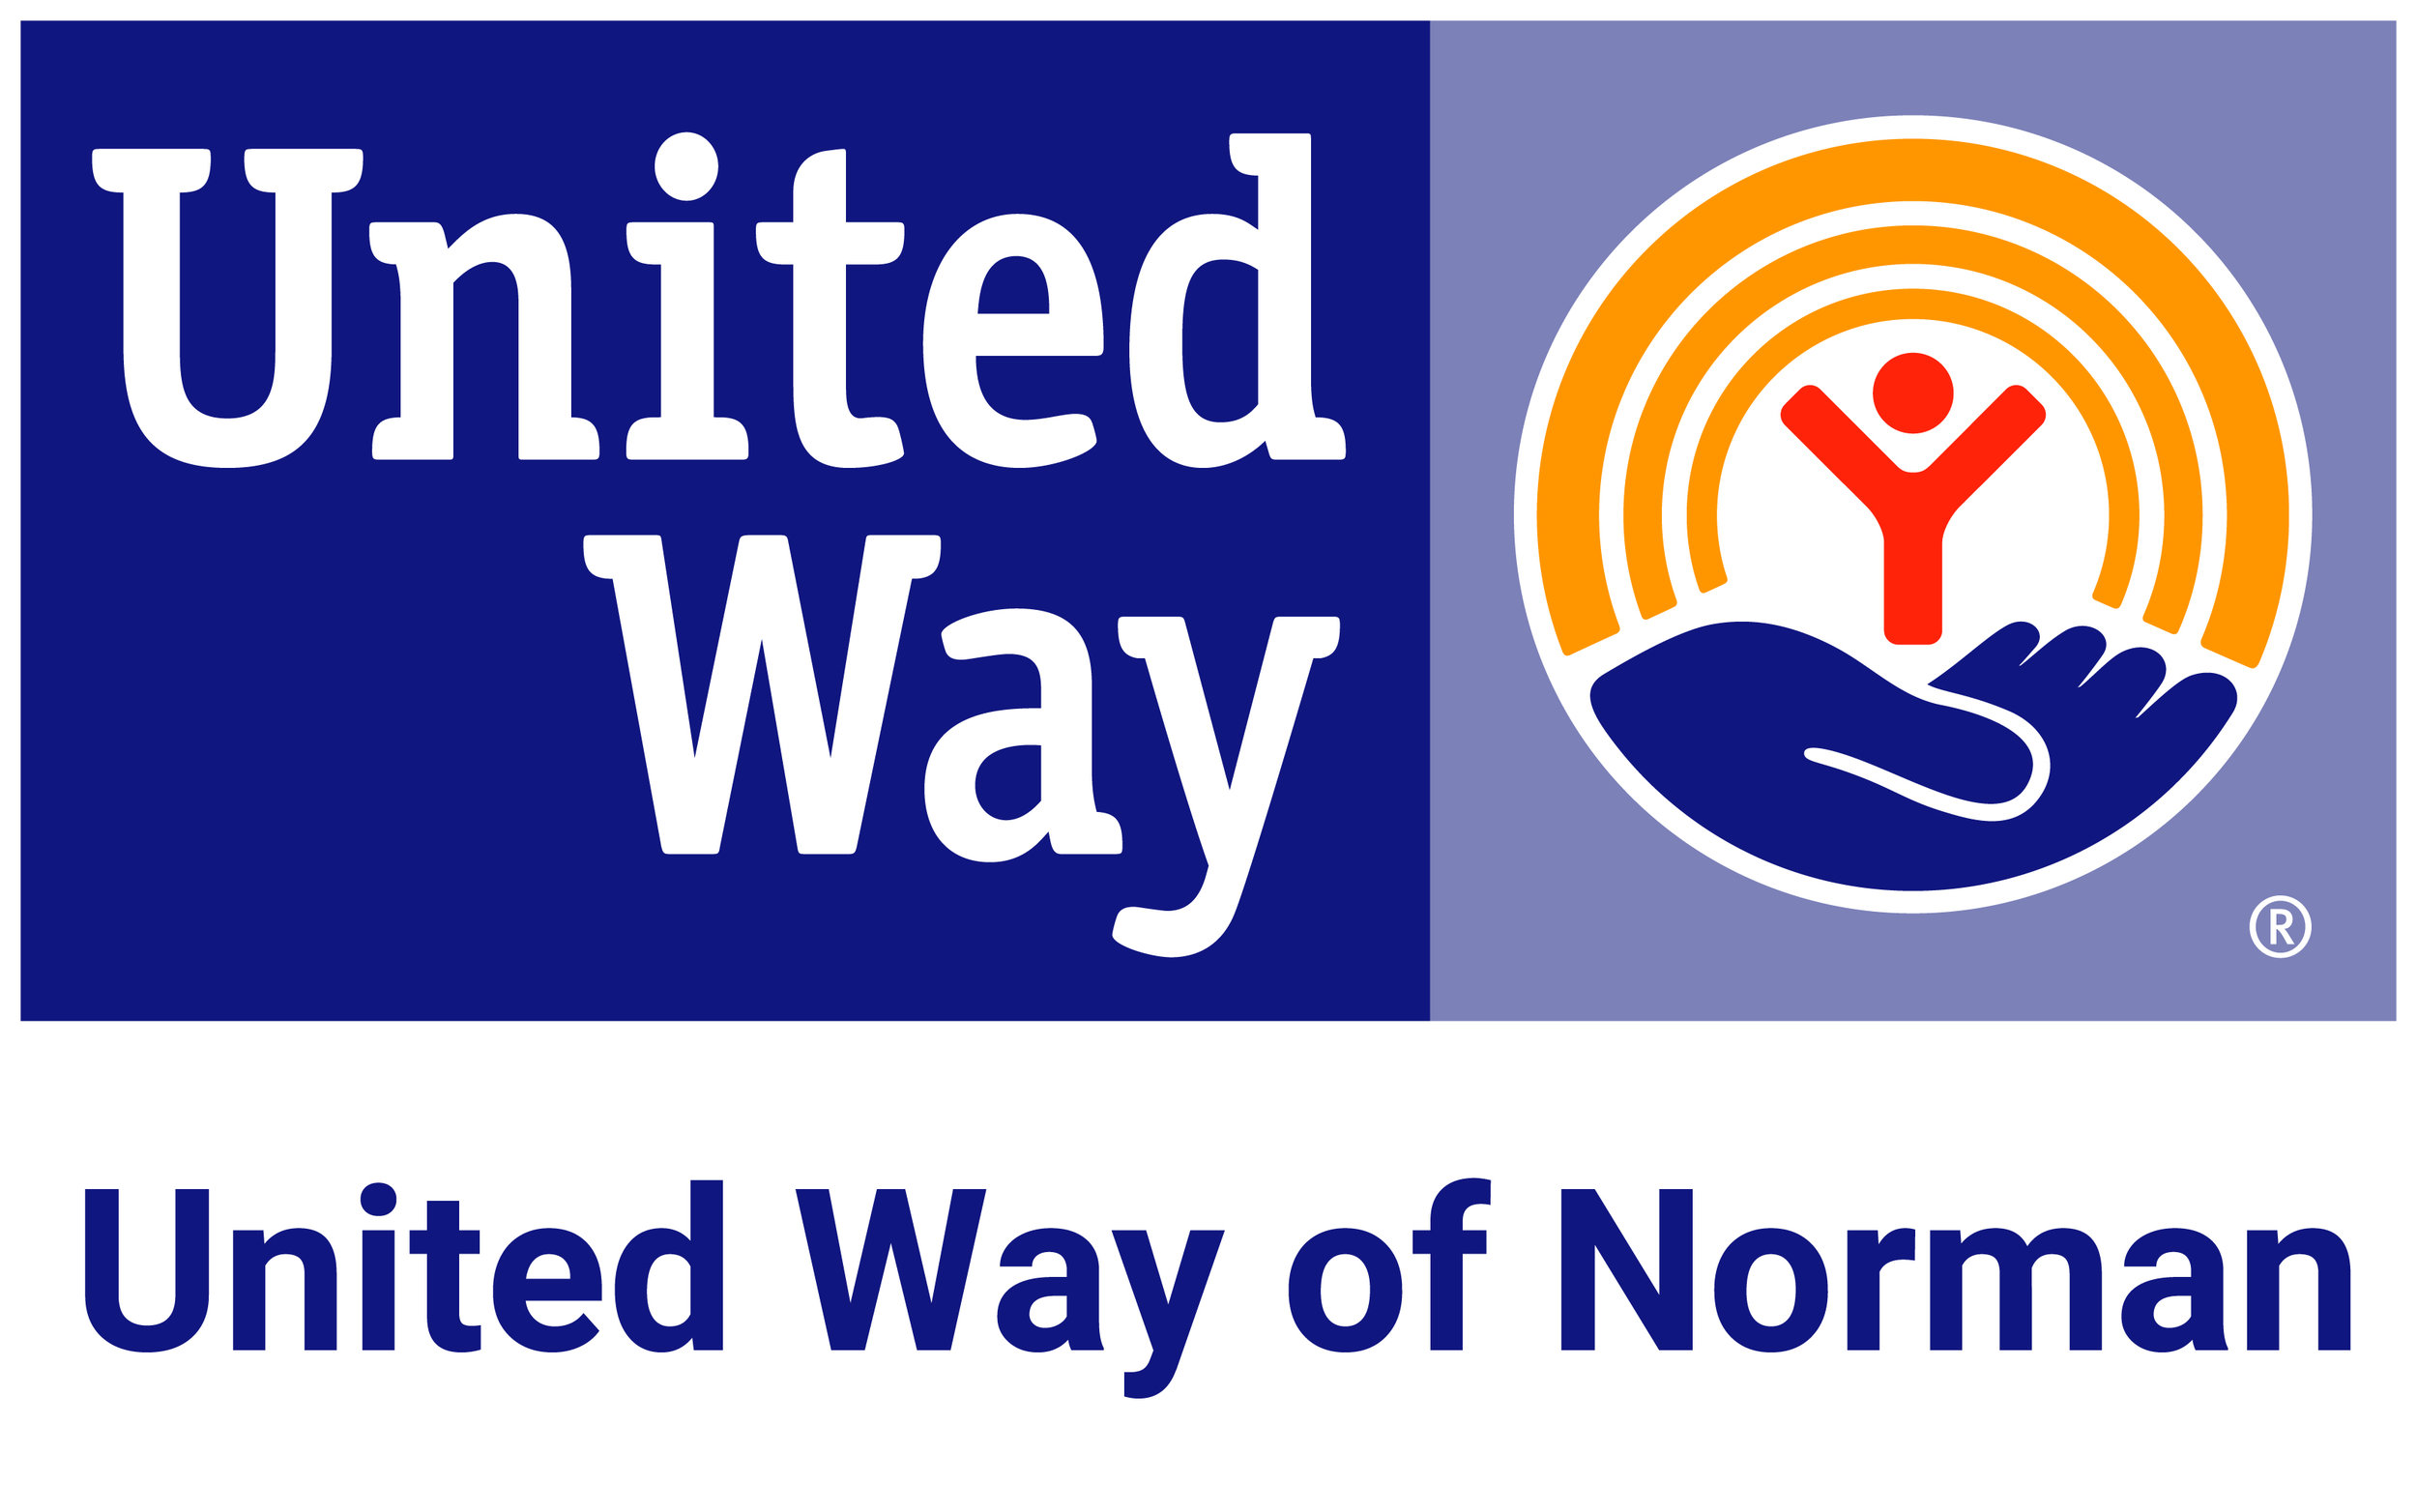 United Way of Norman